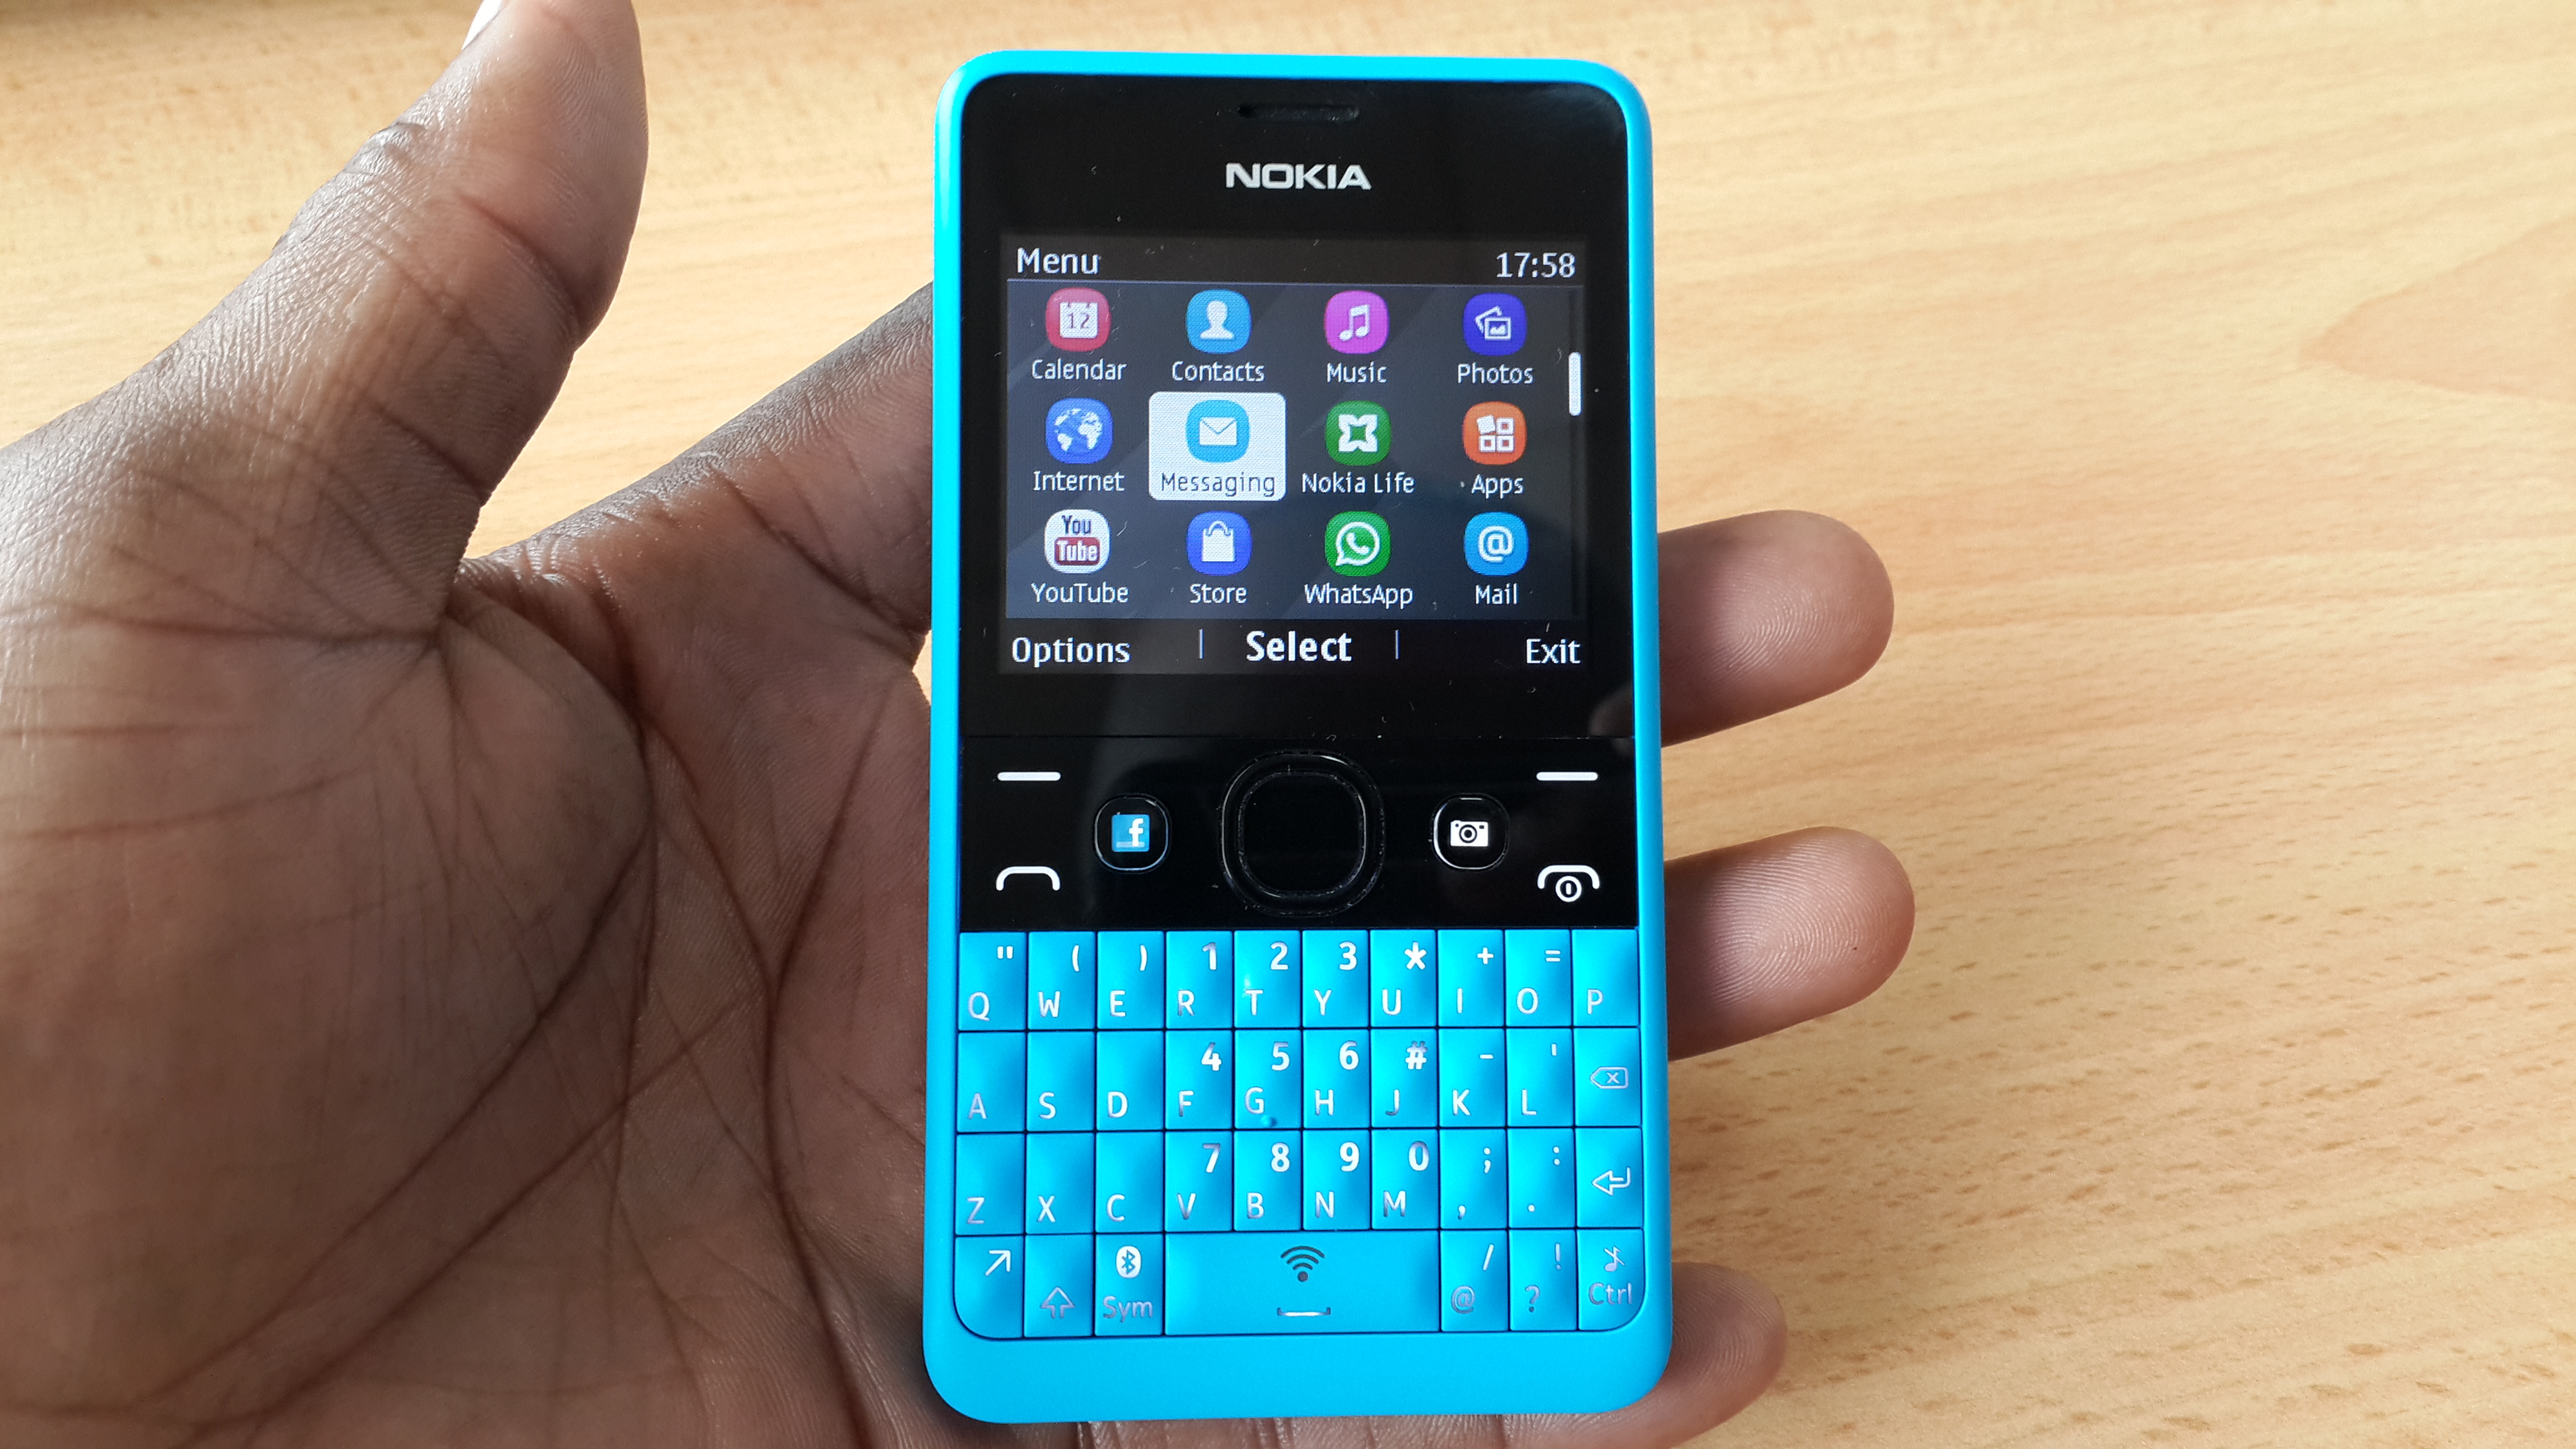 Download whatsapp for nokia asha 306 latest version